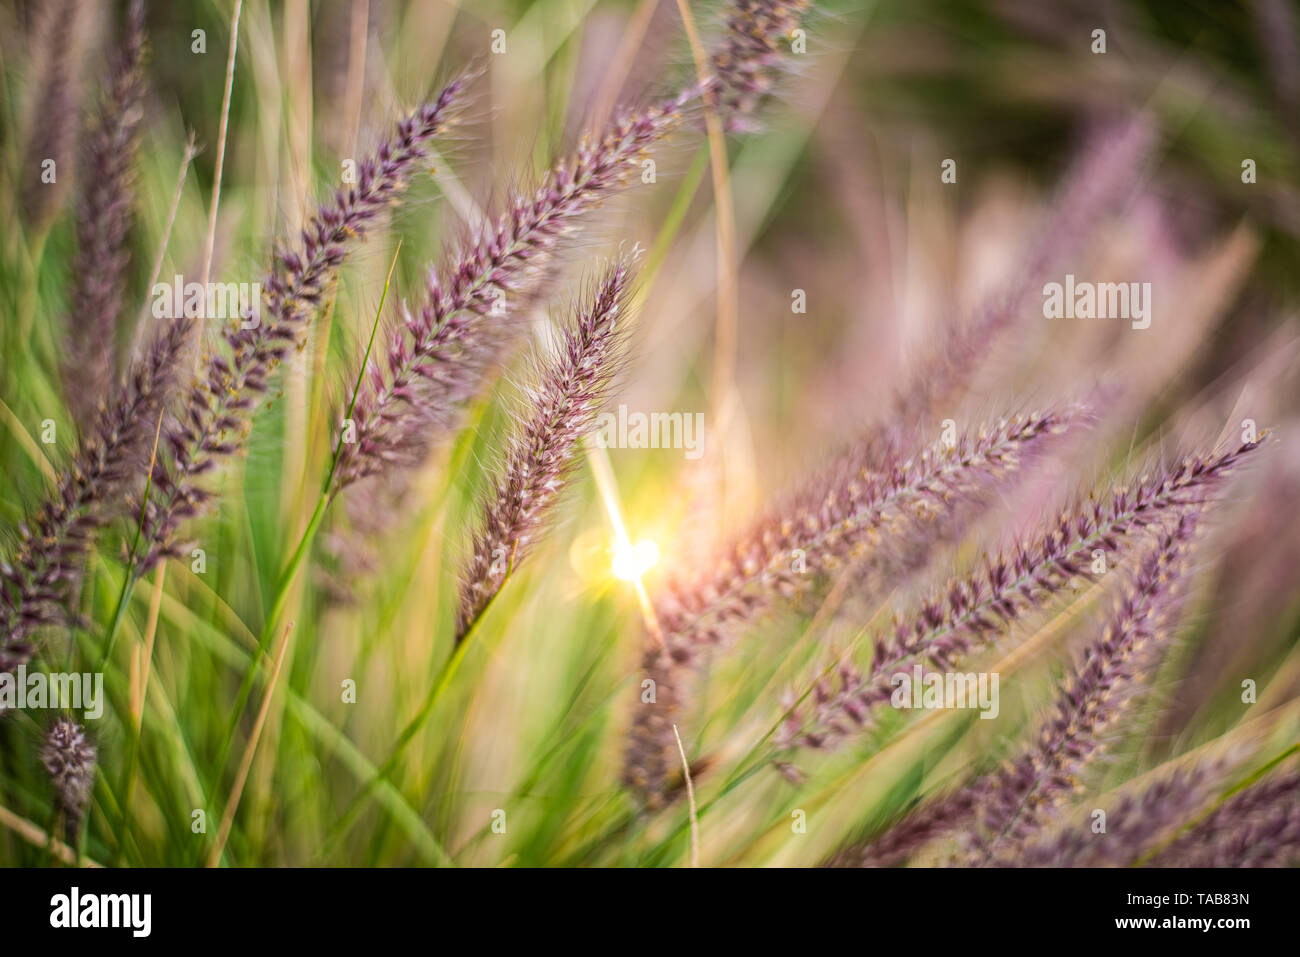 Colorful flowers in purple spikes, purple fountain grass, close-up useful as a natural relaxation background. - Stock Image